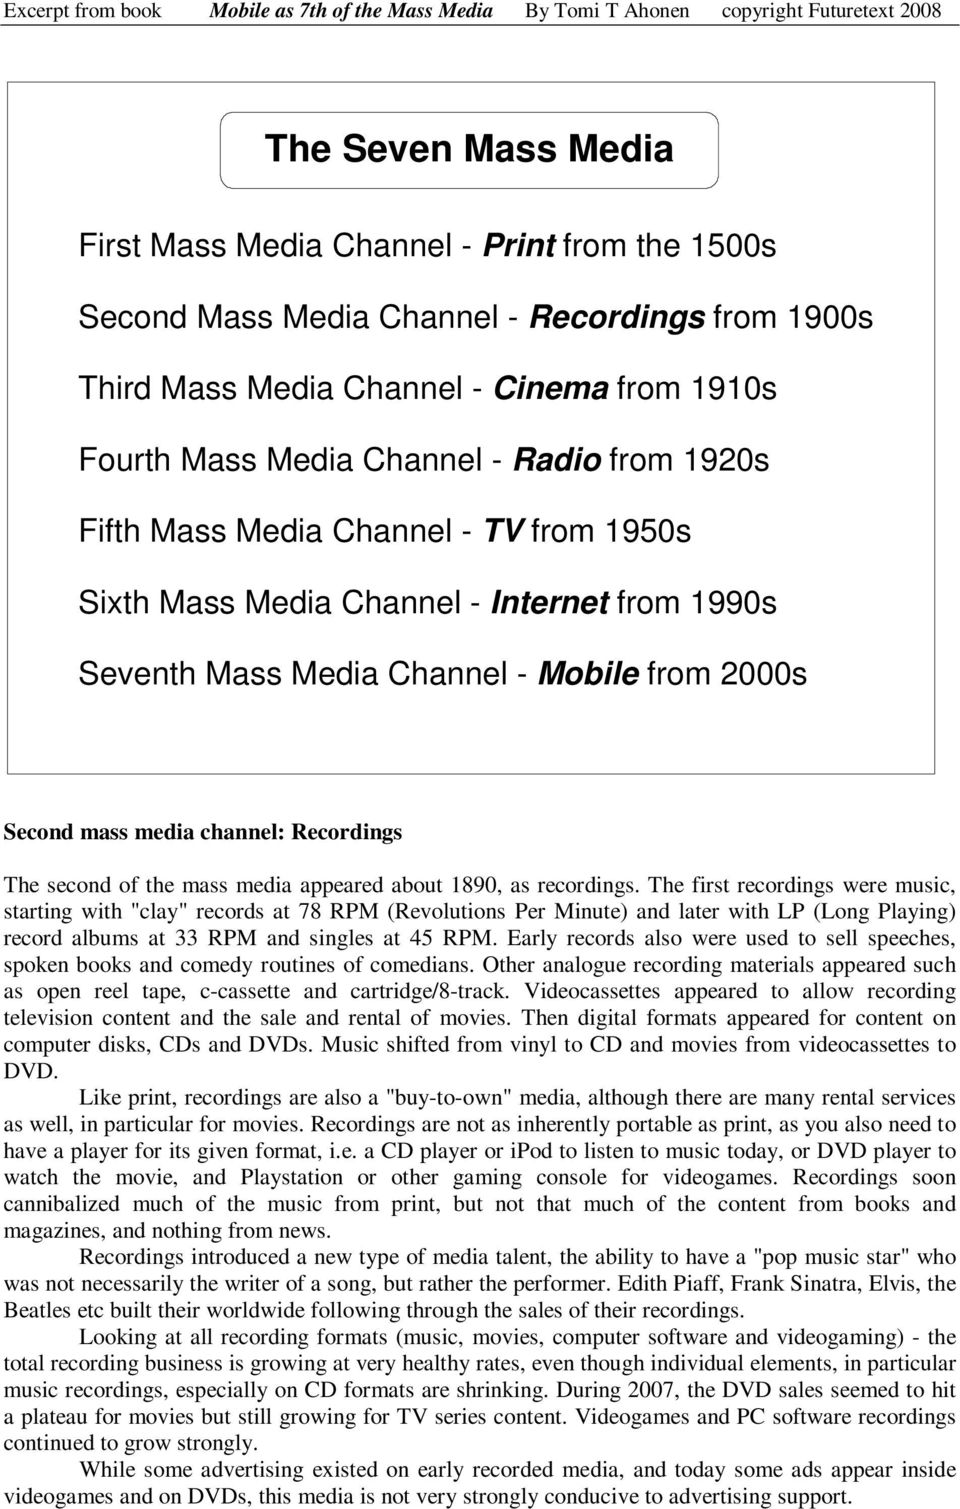 the mass media appeared about 1890, as recordings.